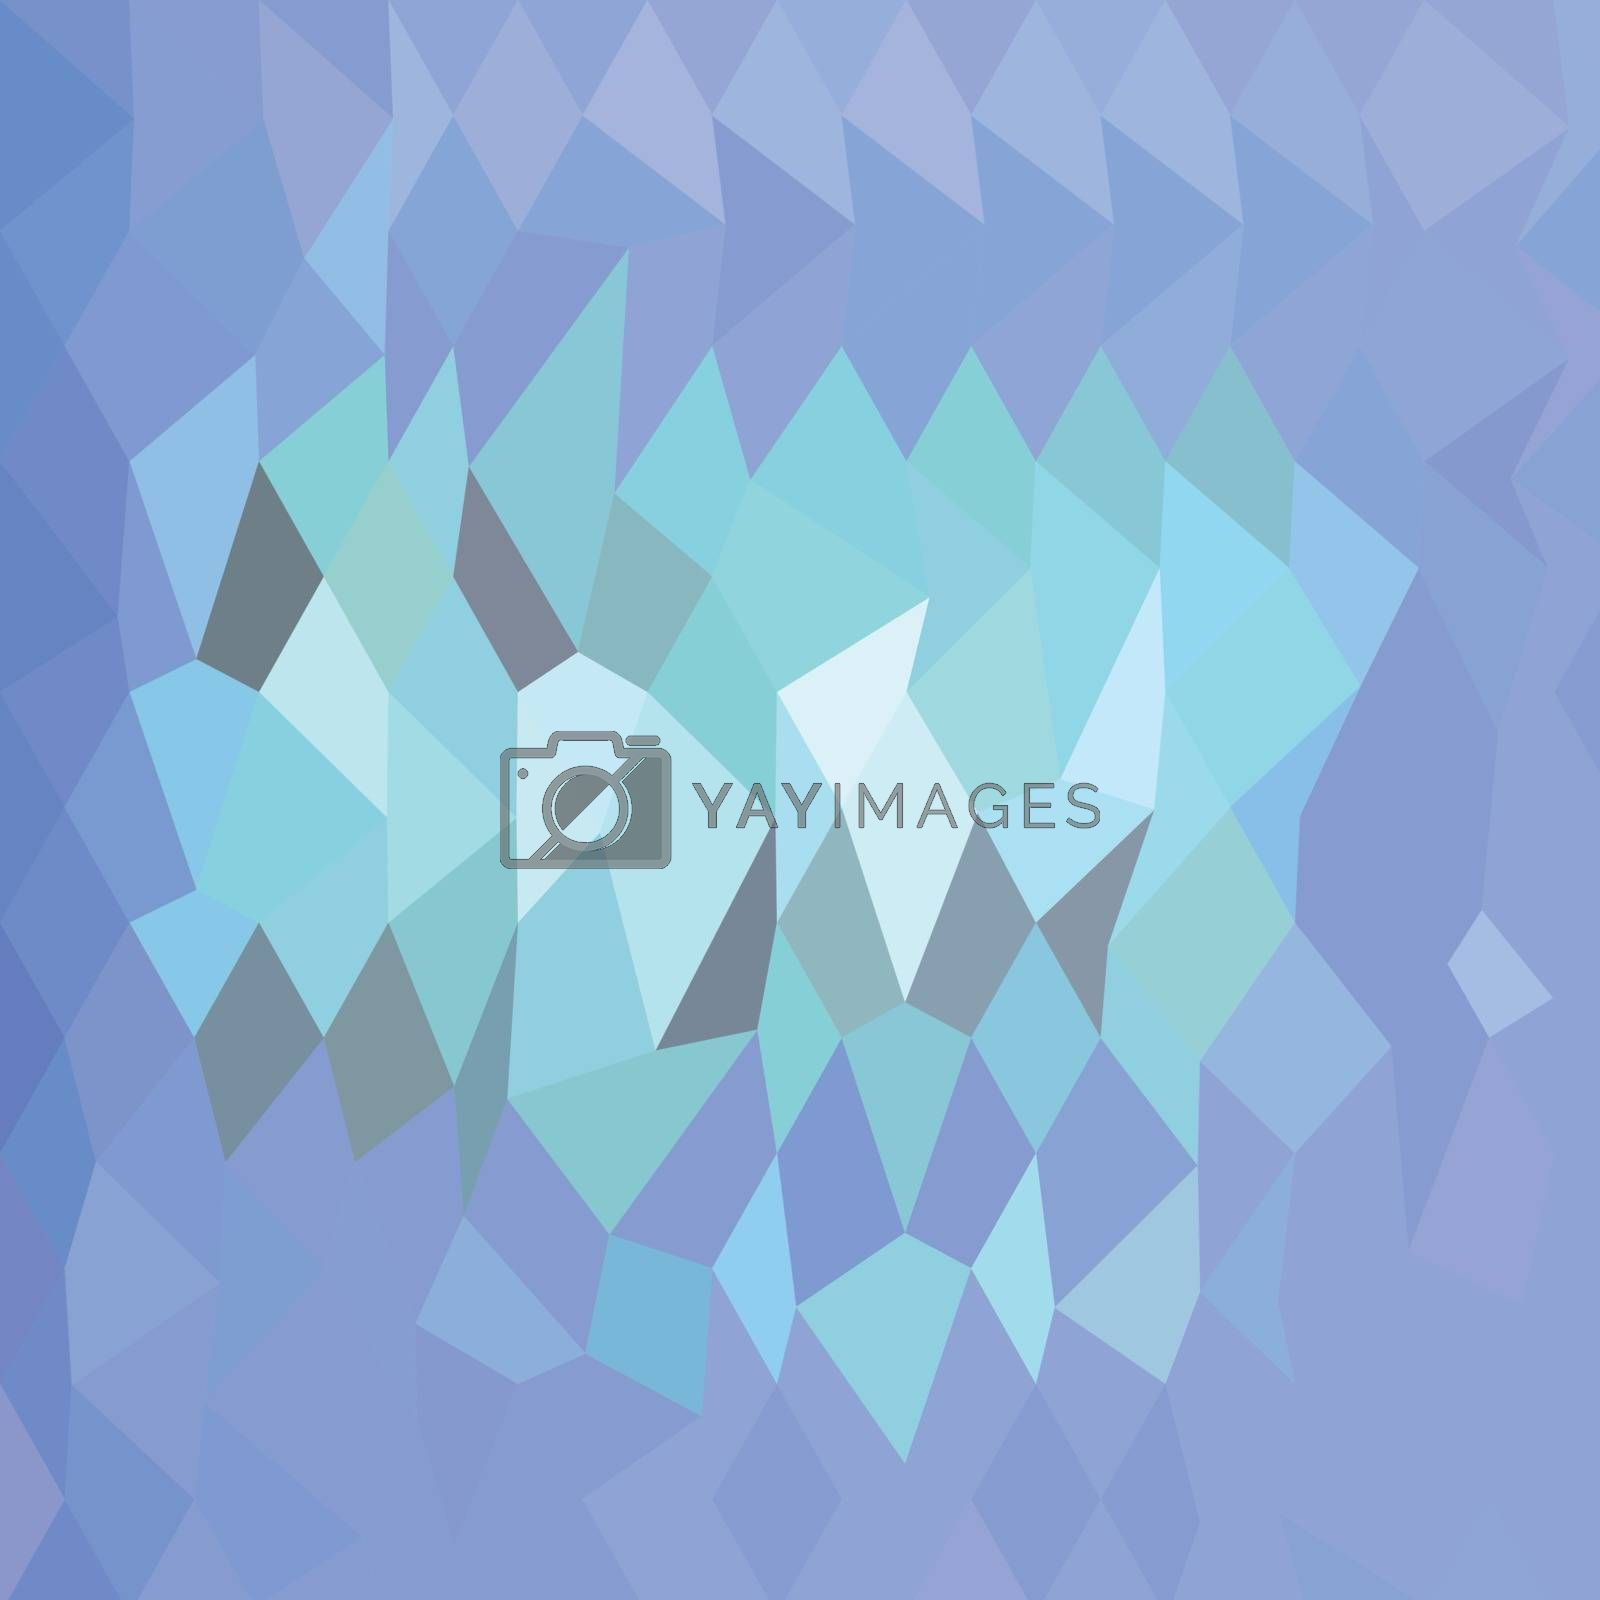 Low polygon style illustration of lavender abstract background.